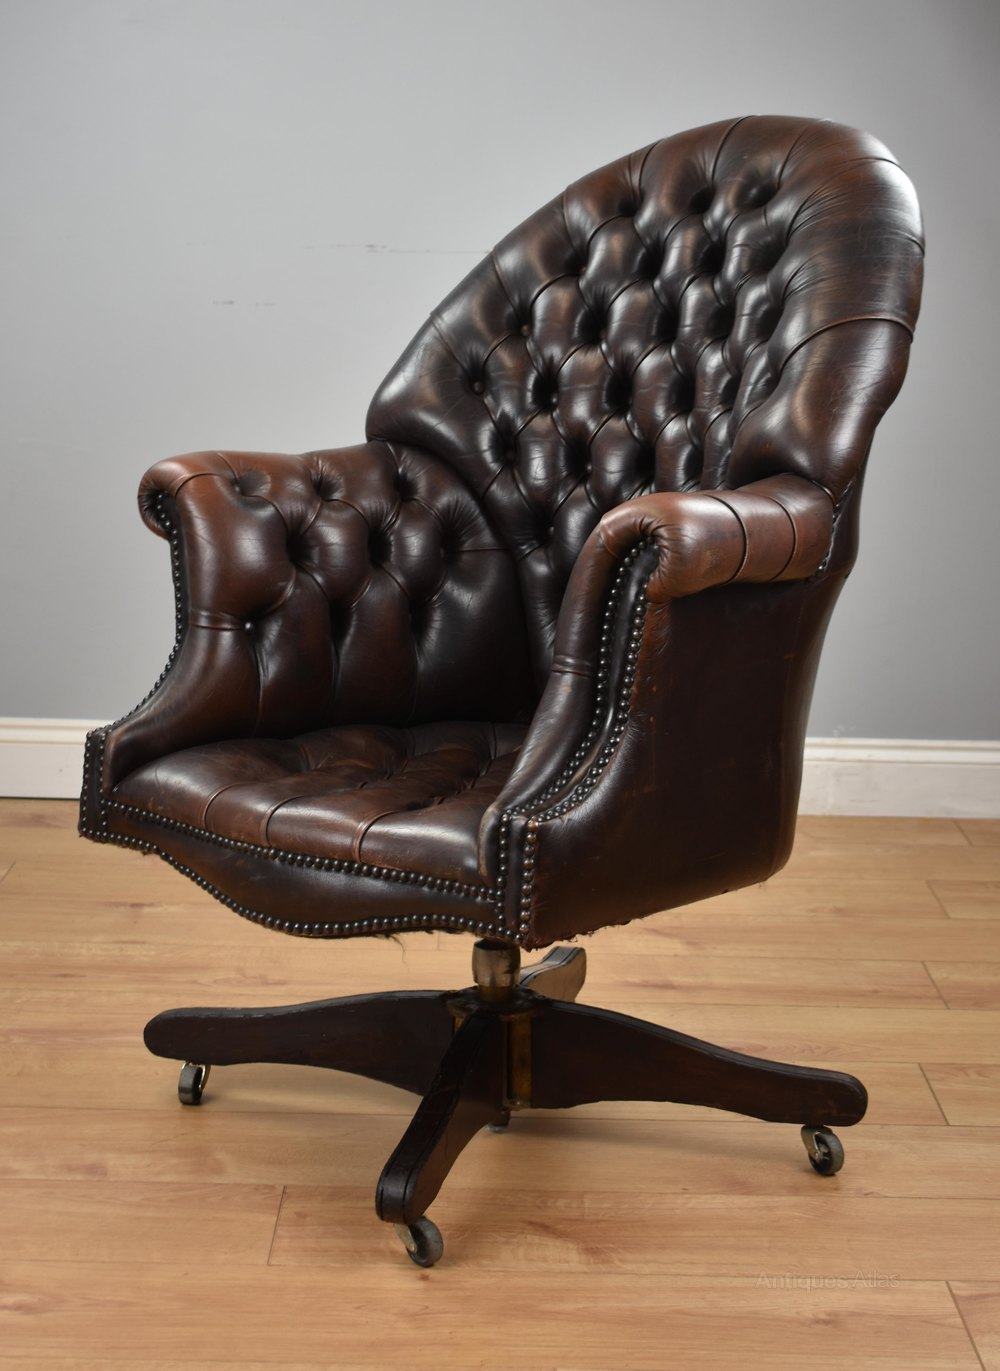 Prime Brown Leather Swivel Office Desk Chair Download Free Architecture Designs Sospemadebymaigaardcom